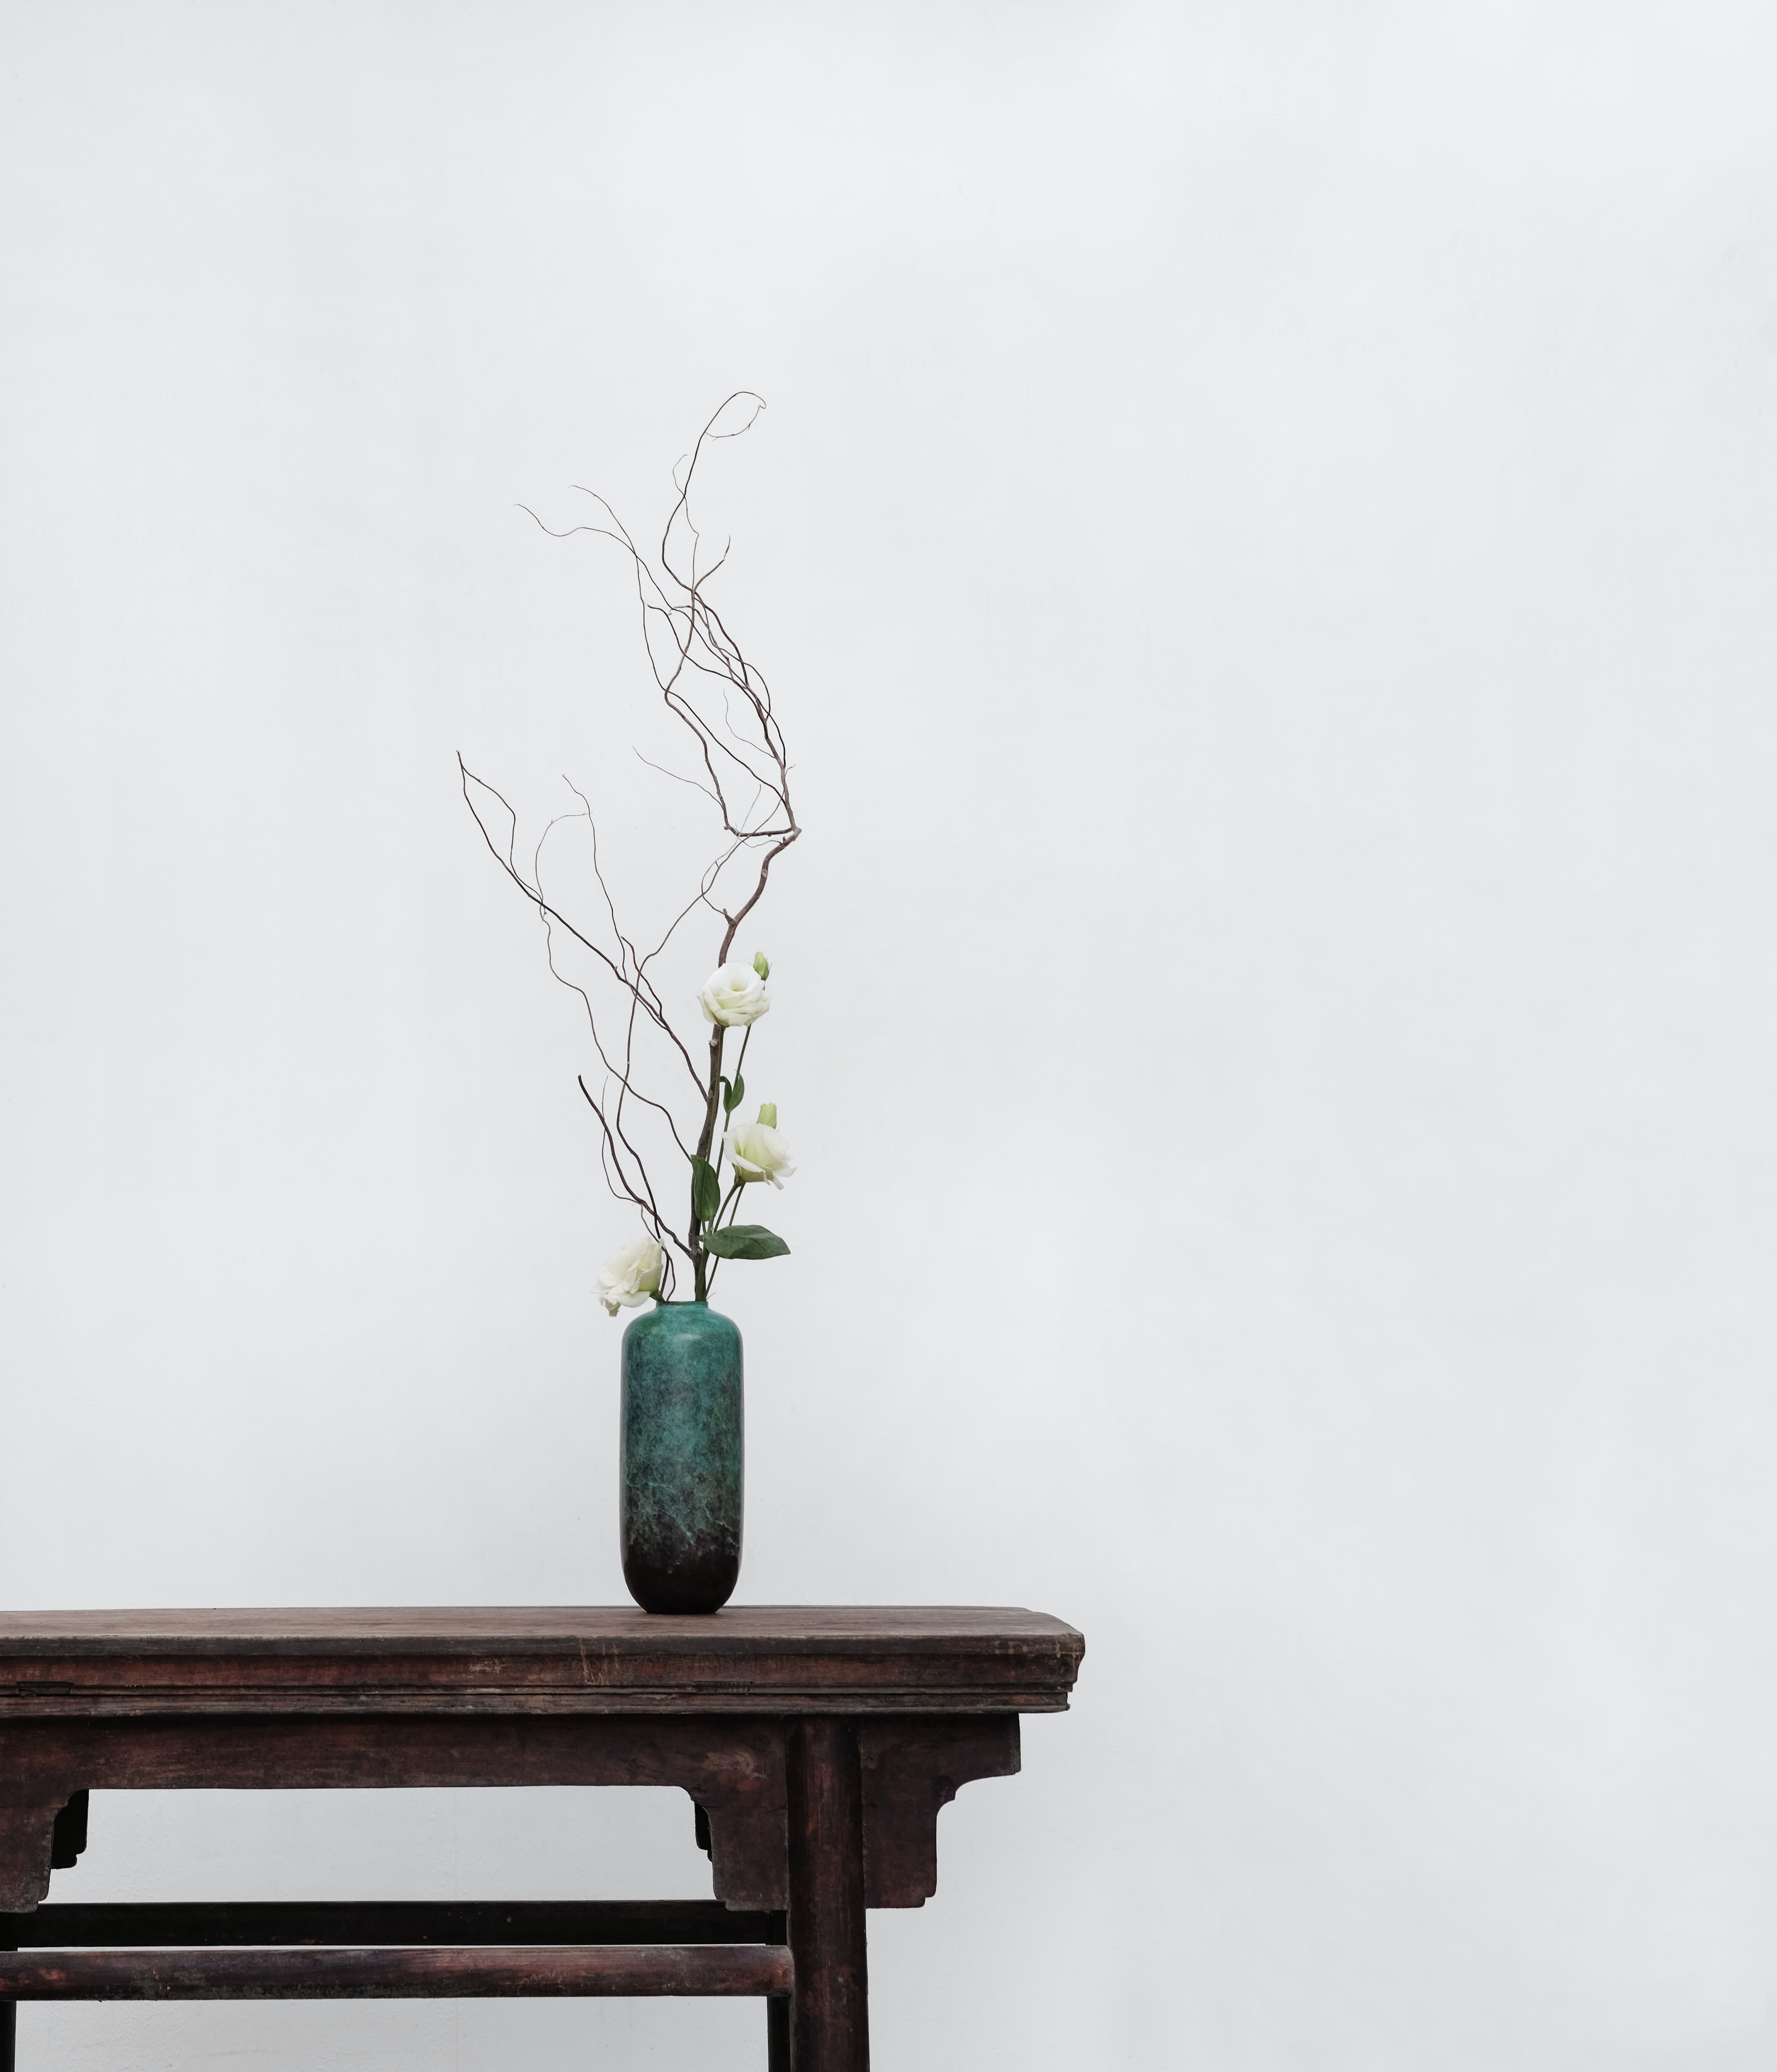 white flowers with green ceramic vase on top of brown wooden side table